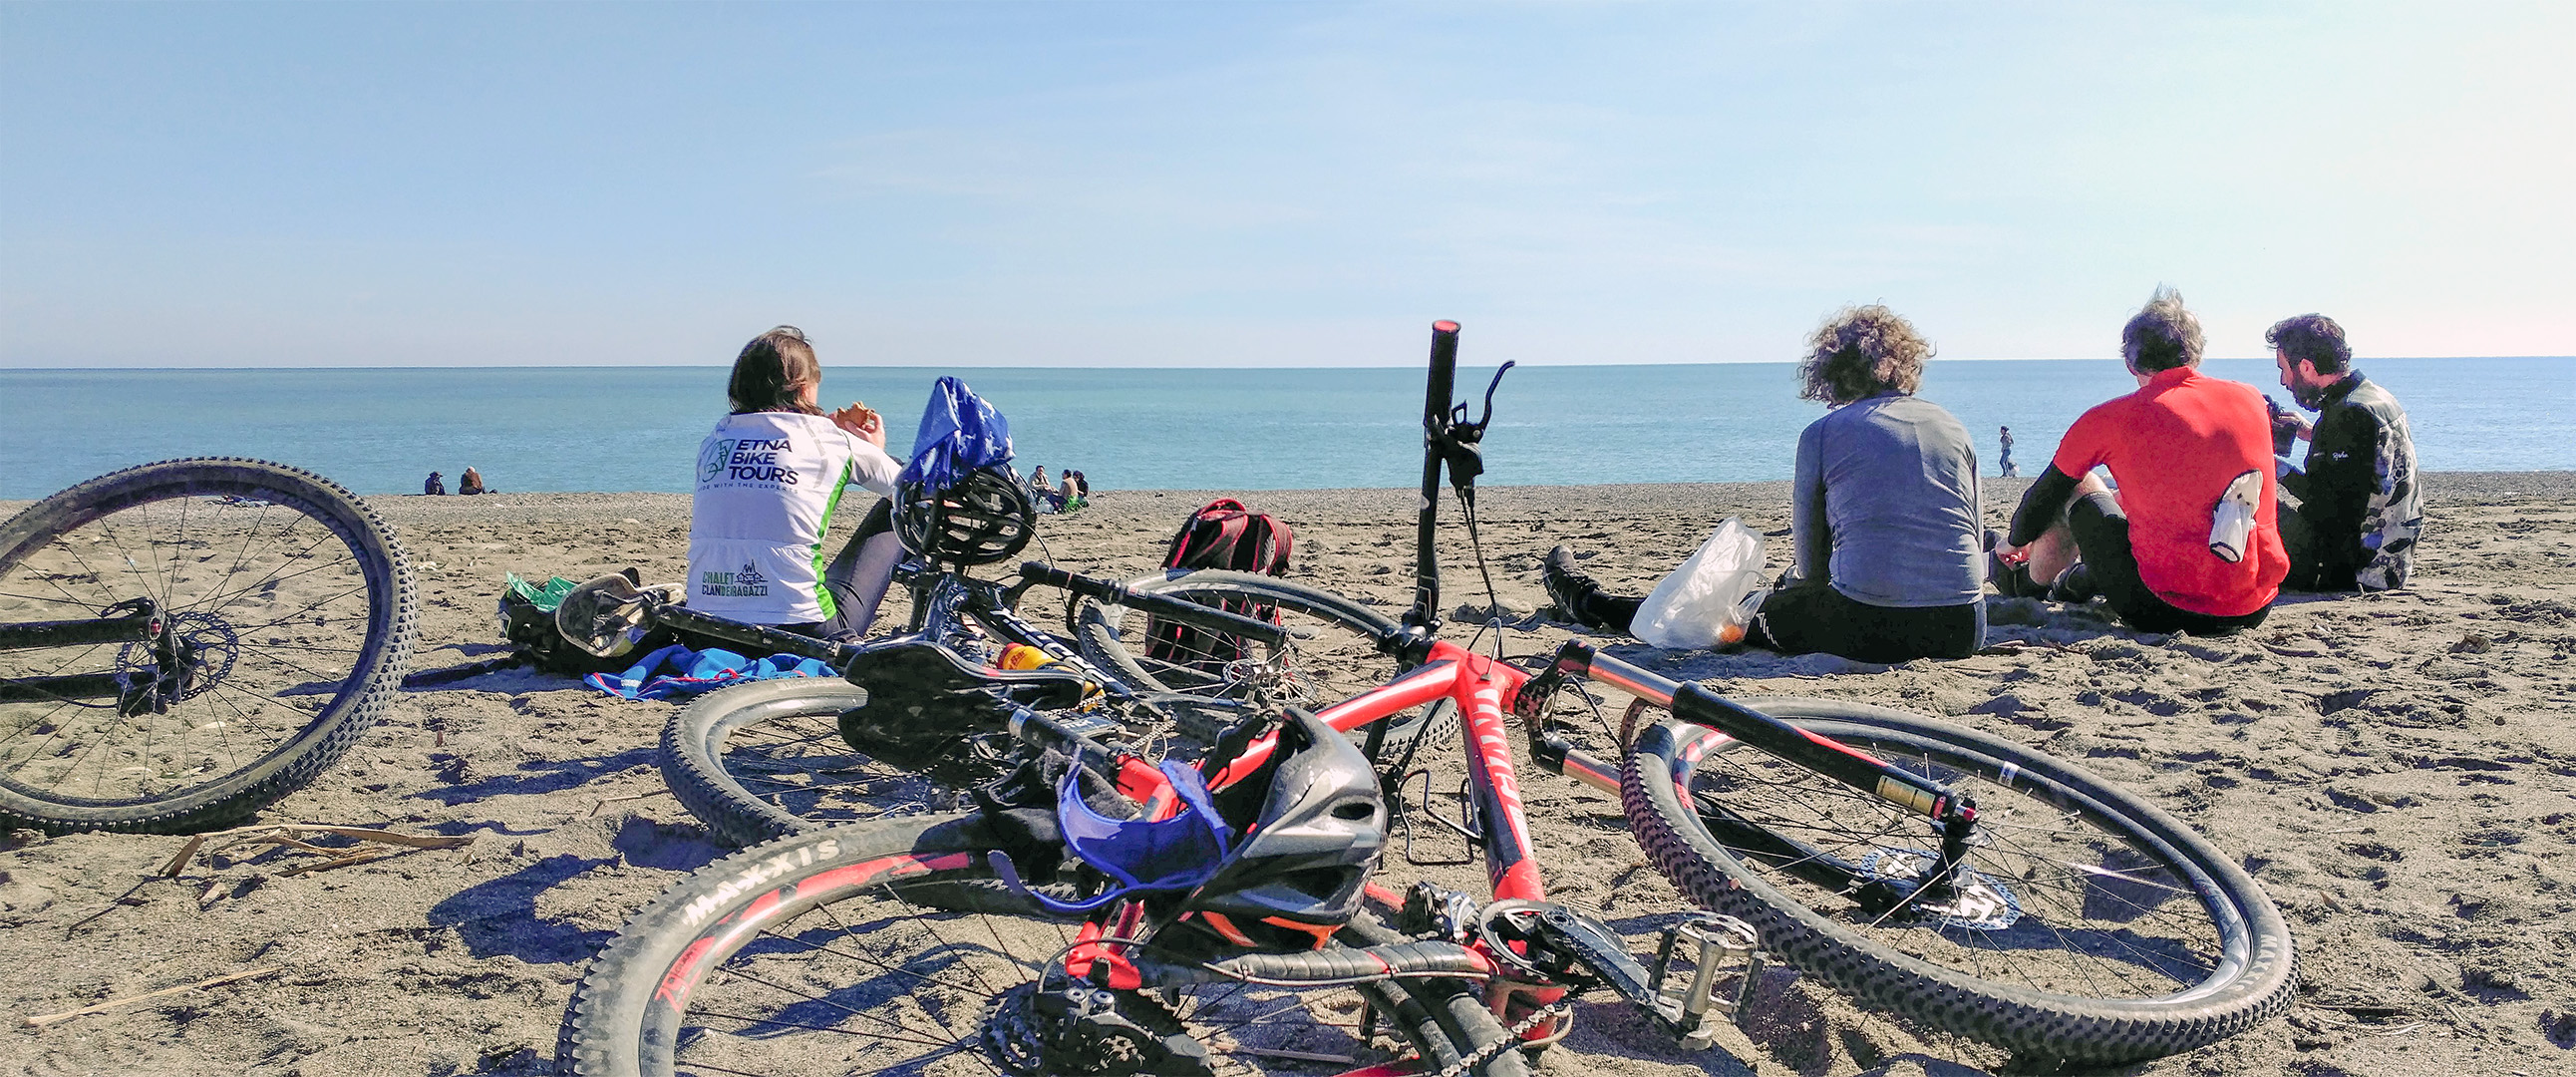 Bicycle, Sport, Beach, IMG 20190210 132215